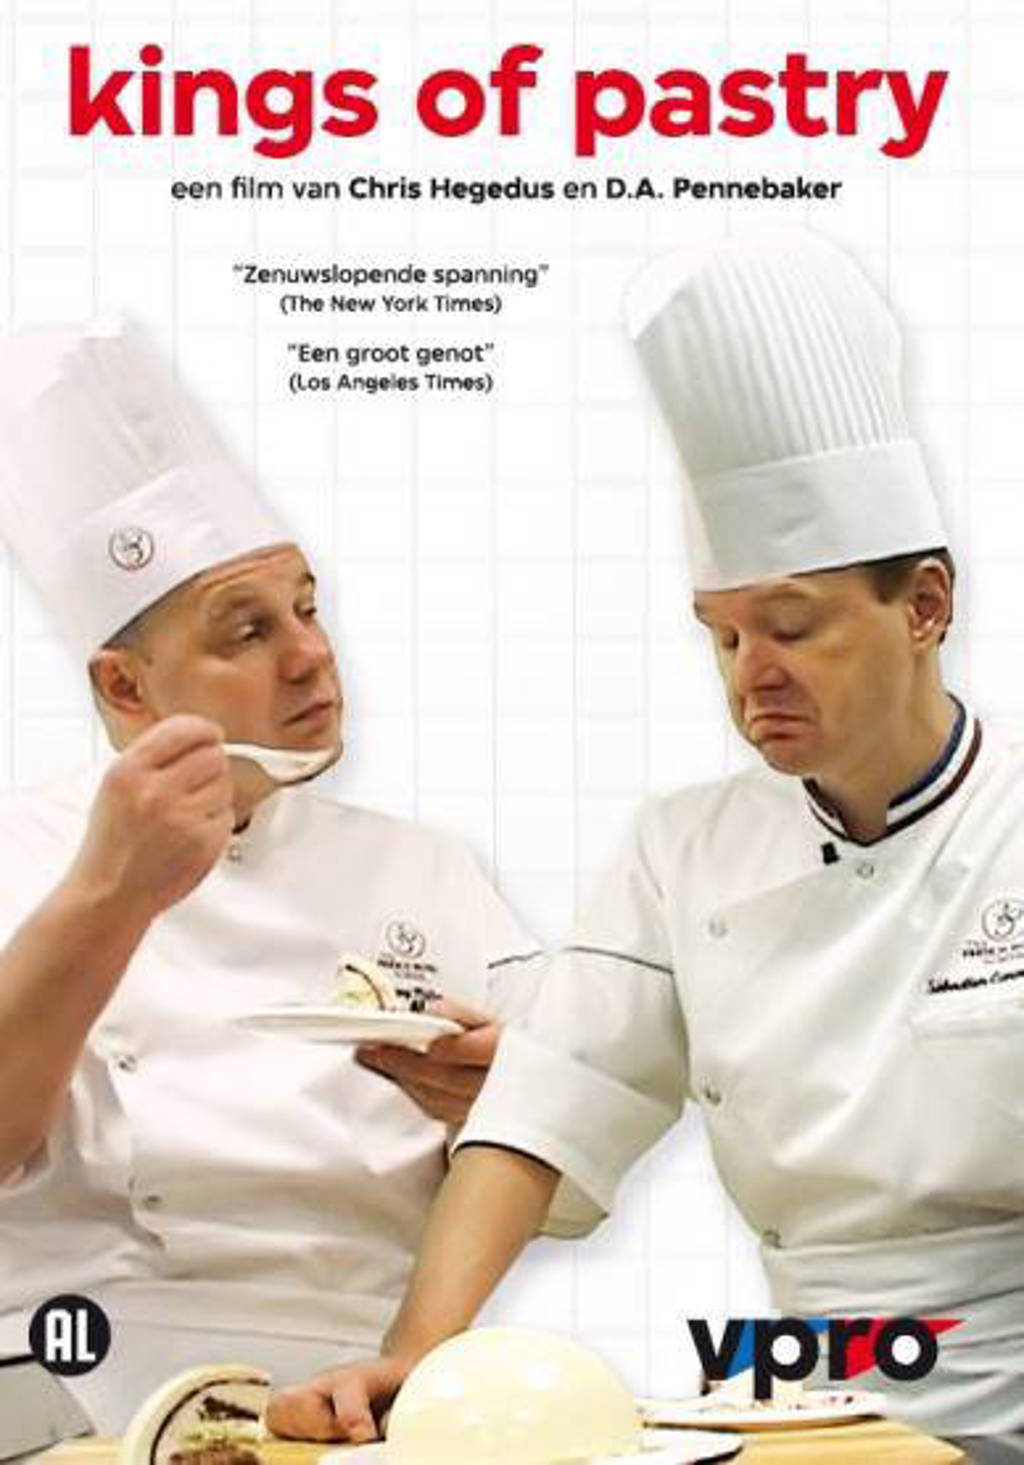 Kings of pastry (DVD)